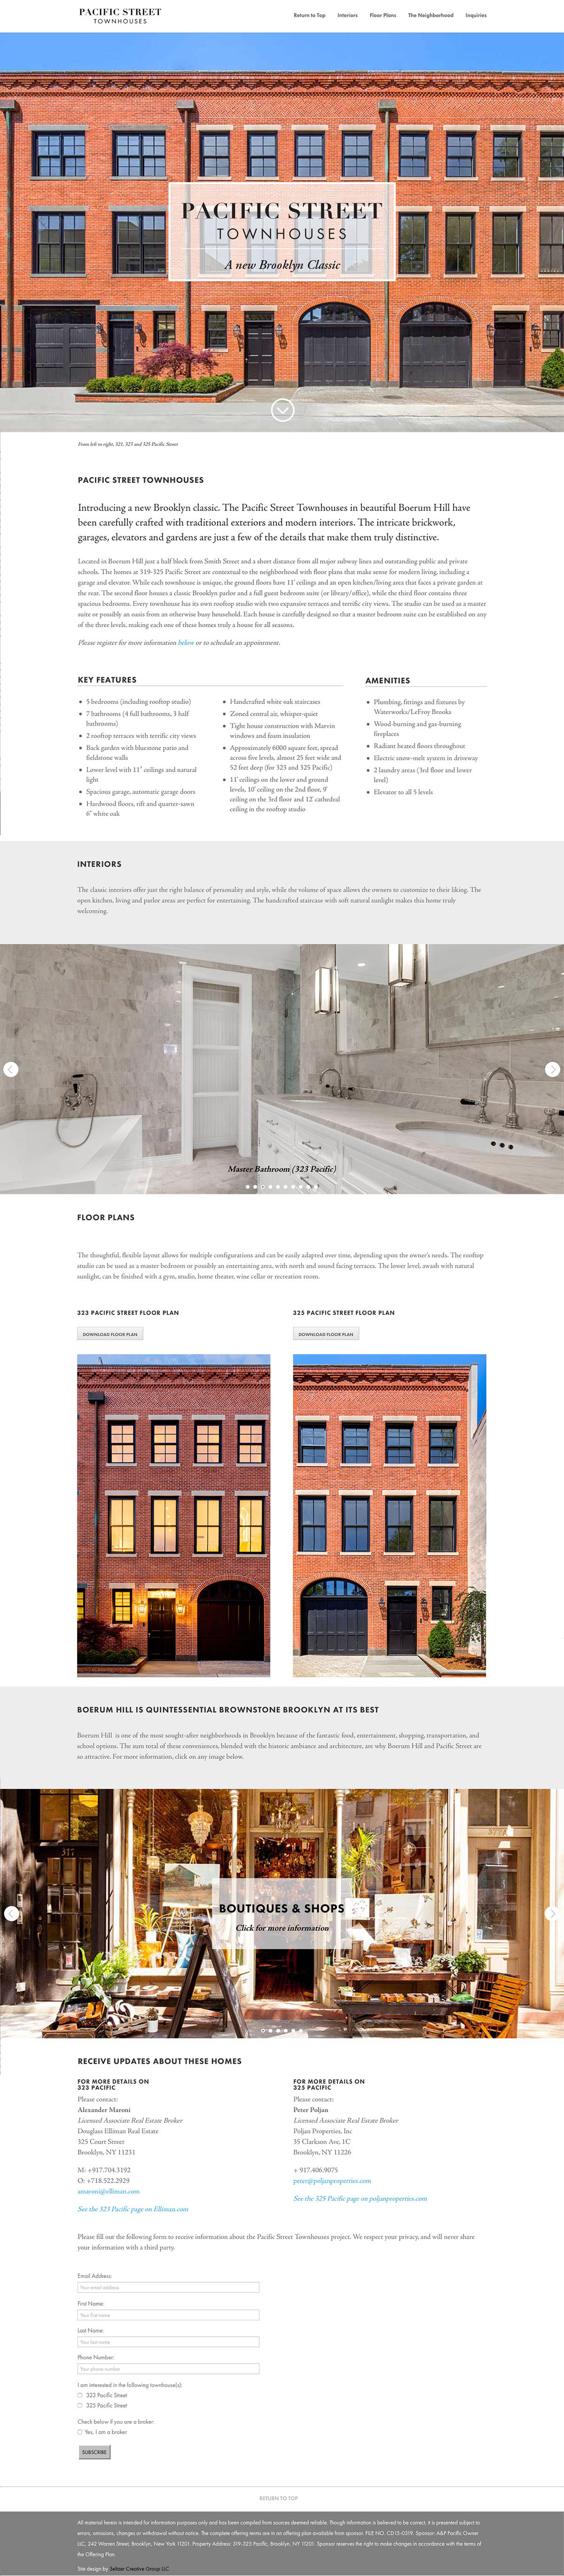 Pacific Street Townhouses Homepage